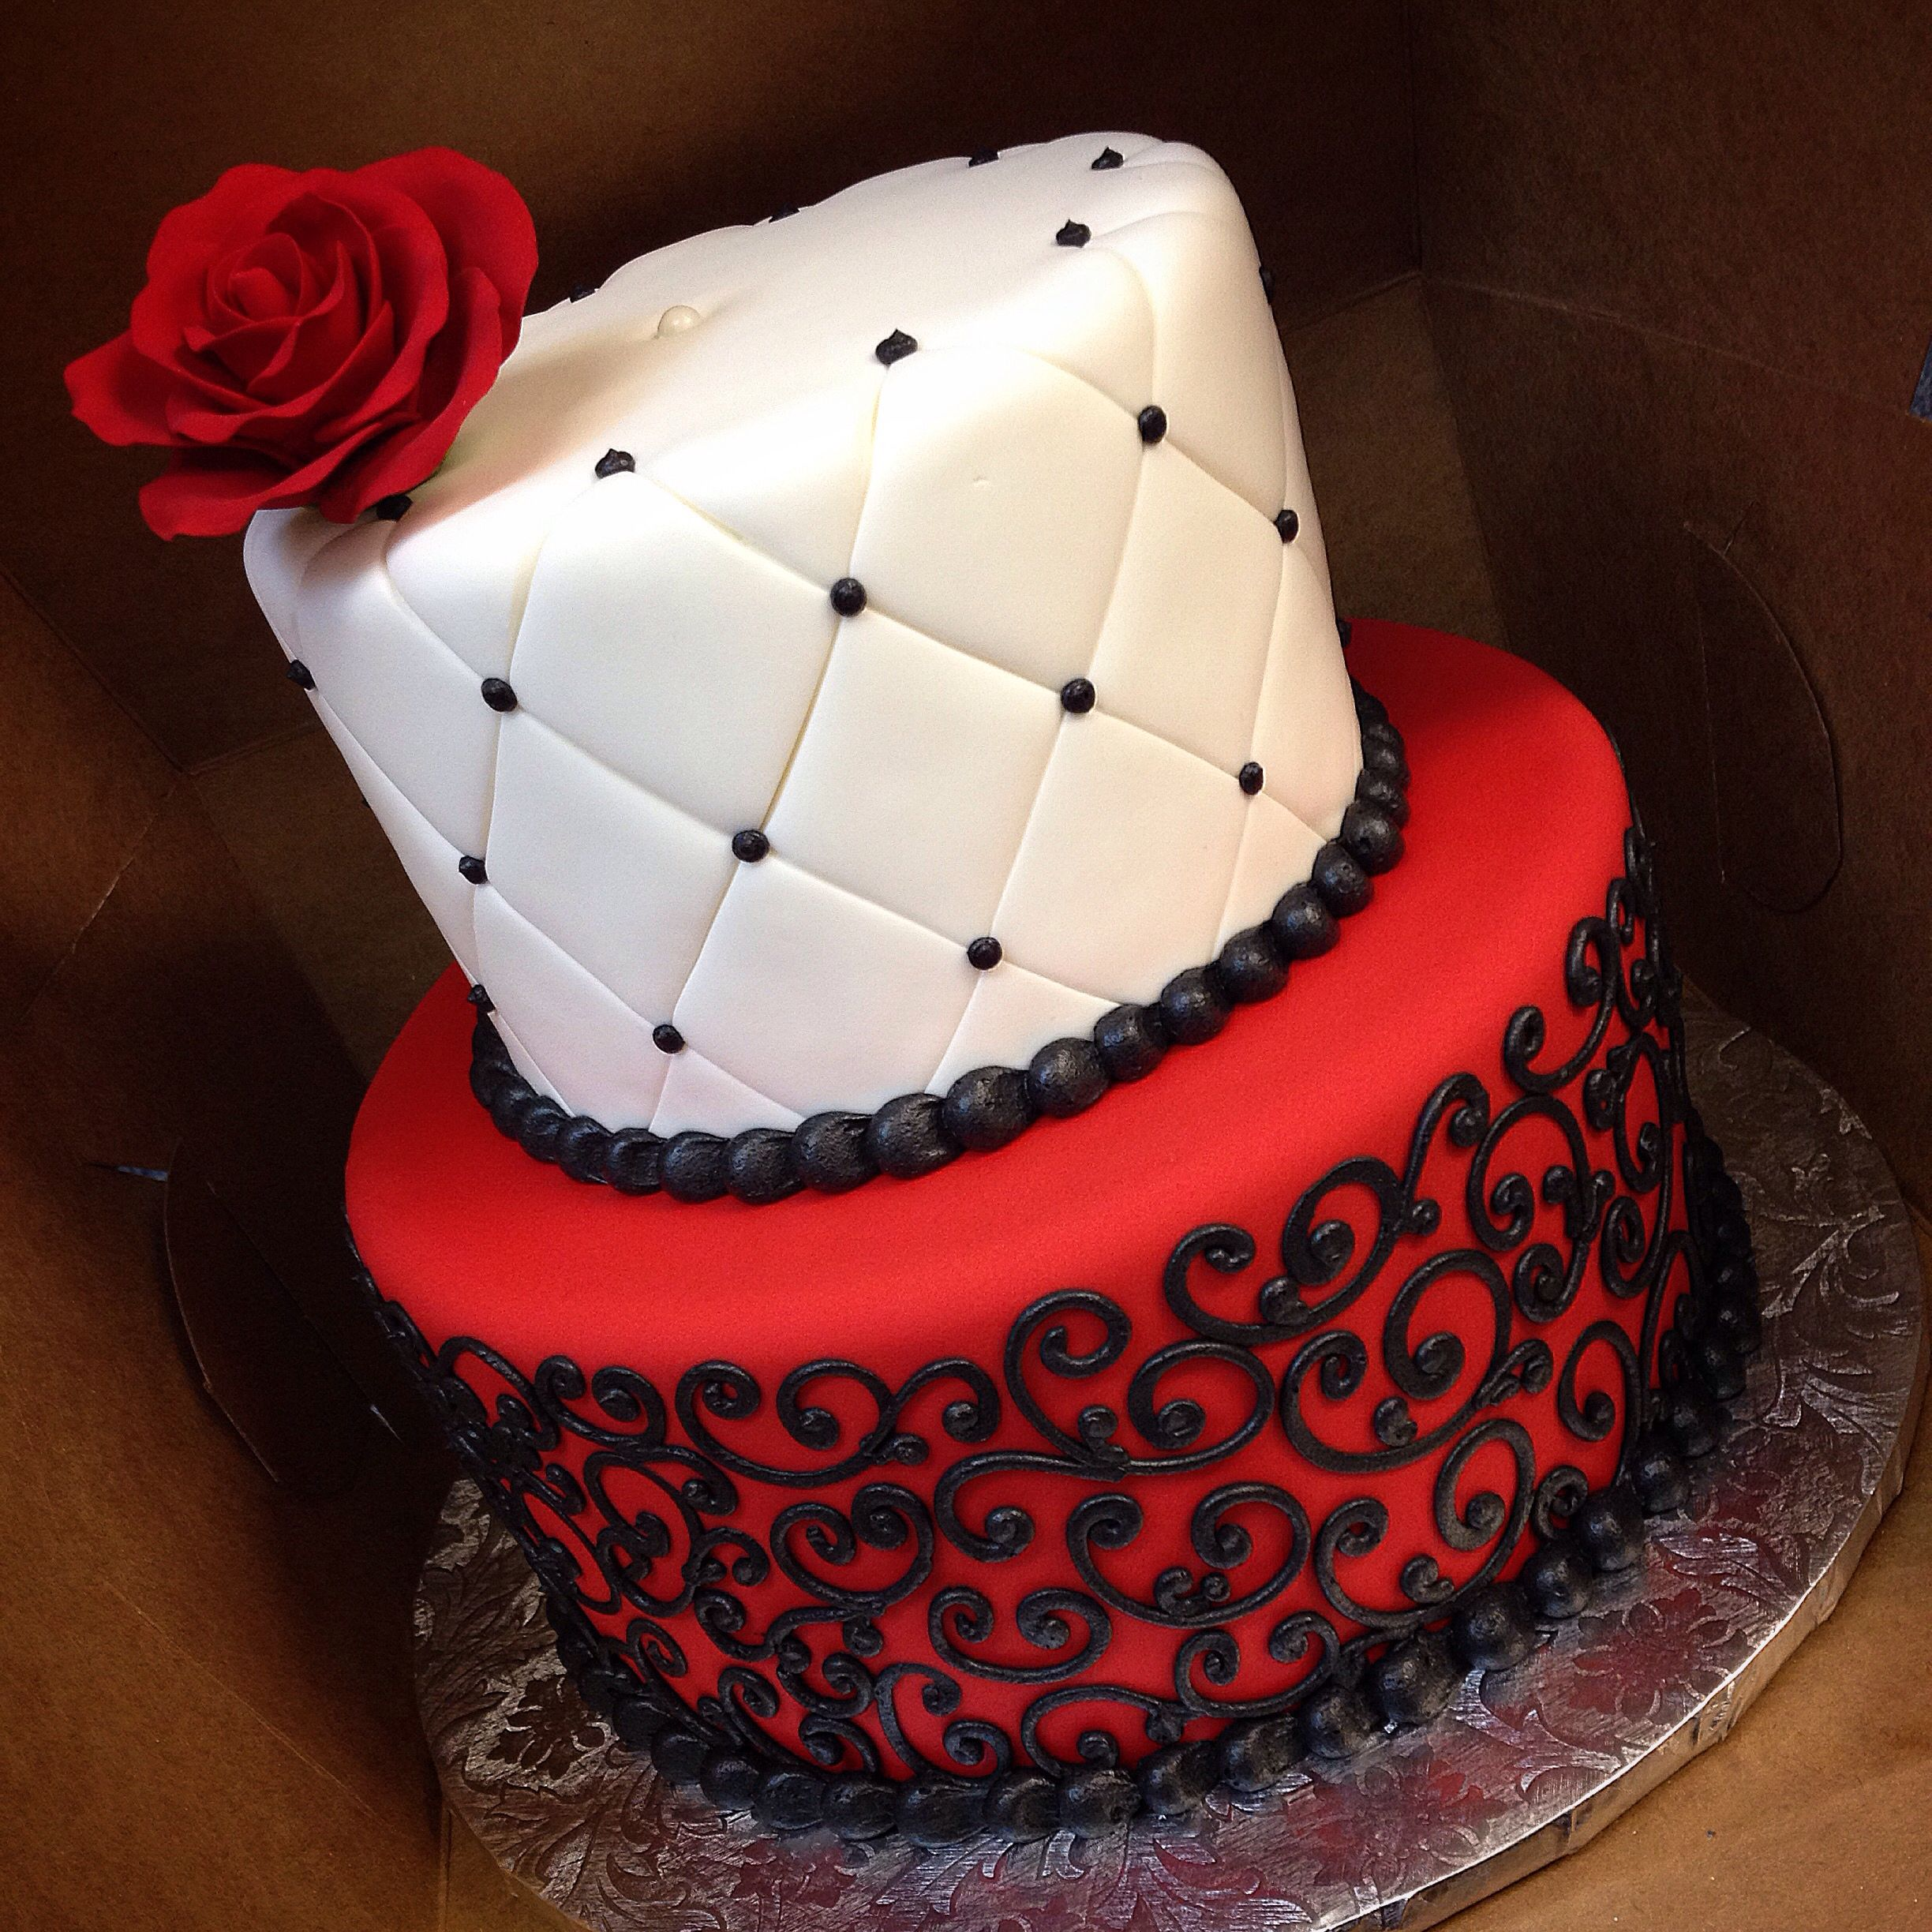 Groovy Black White And Red Birthday Cake For A Phantom Of The Opera Theme Funny Birthday Cards Online Inifodamsfinfo